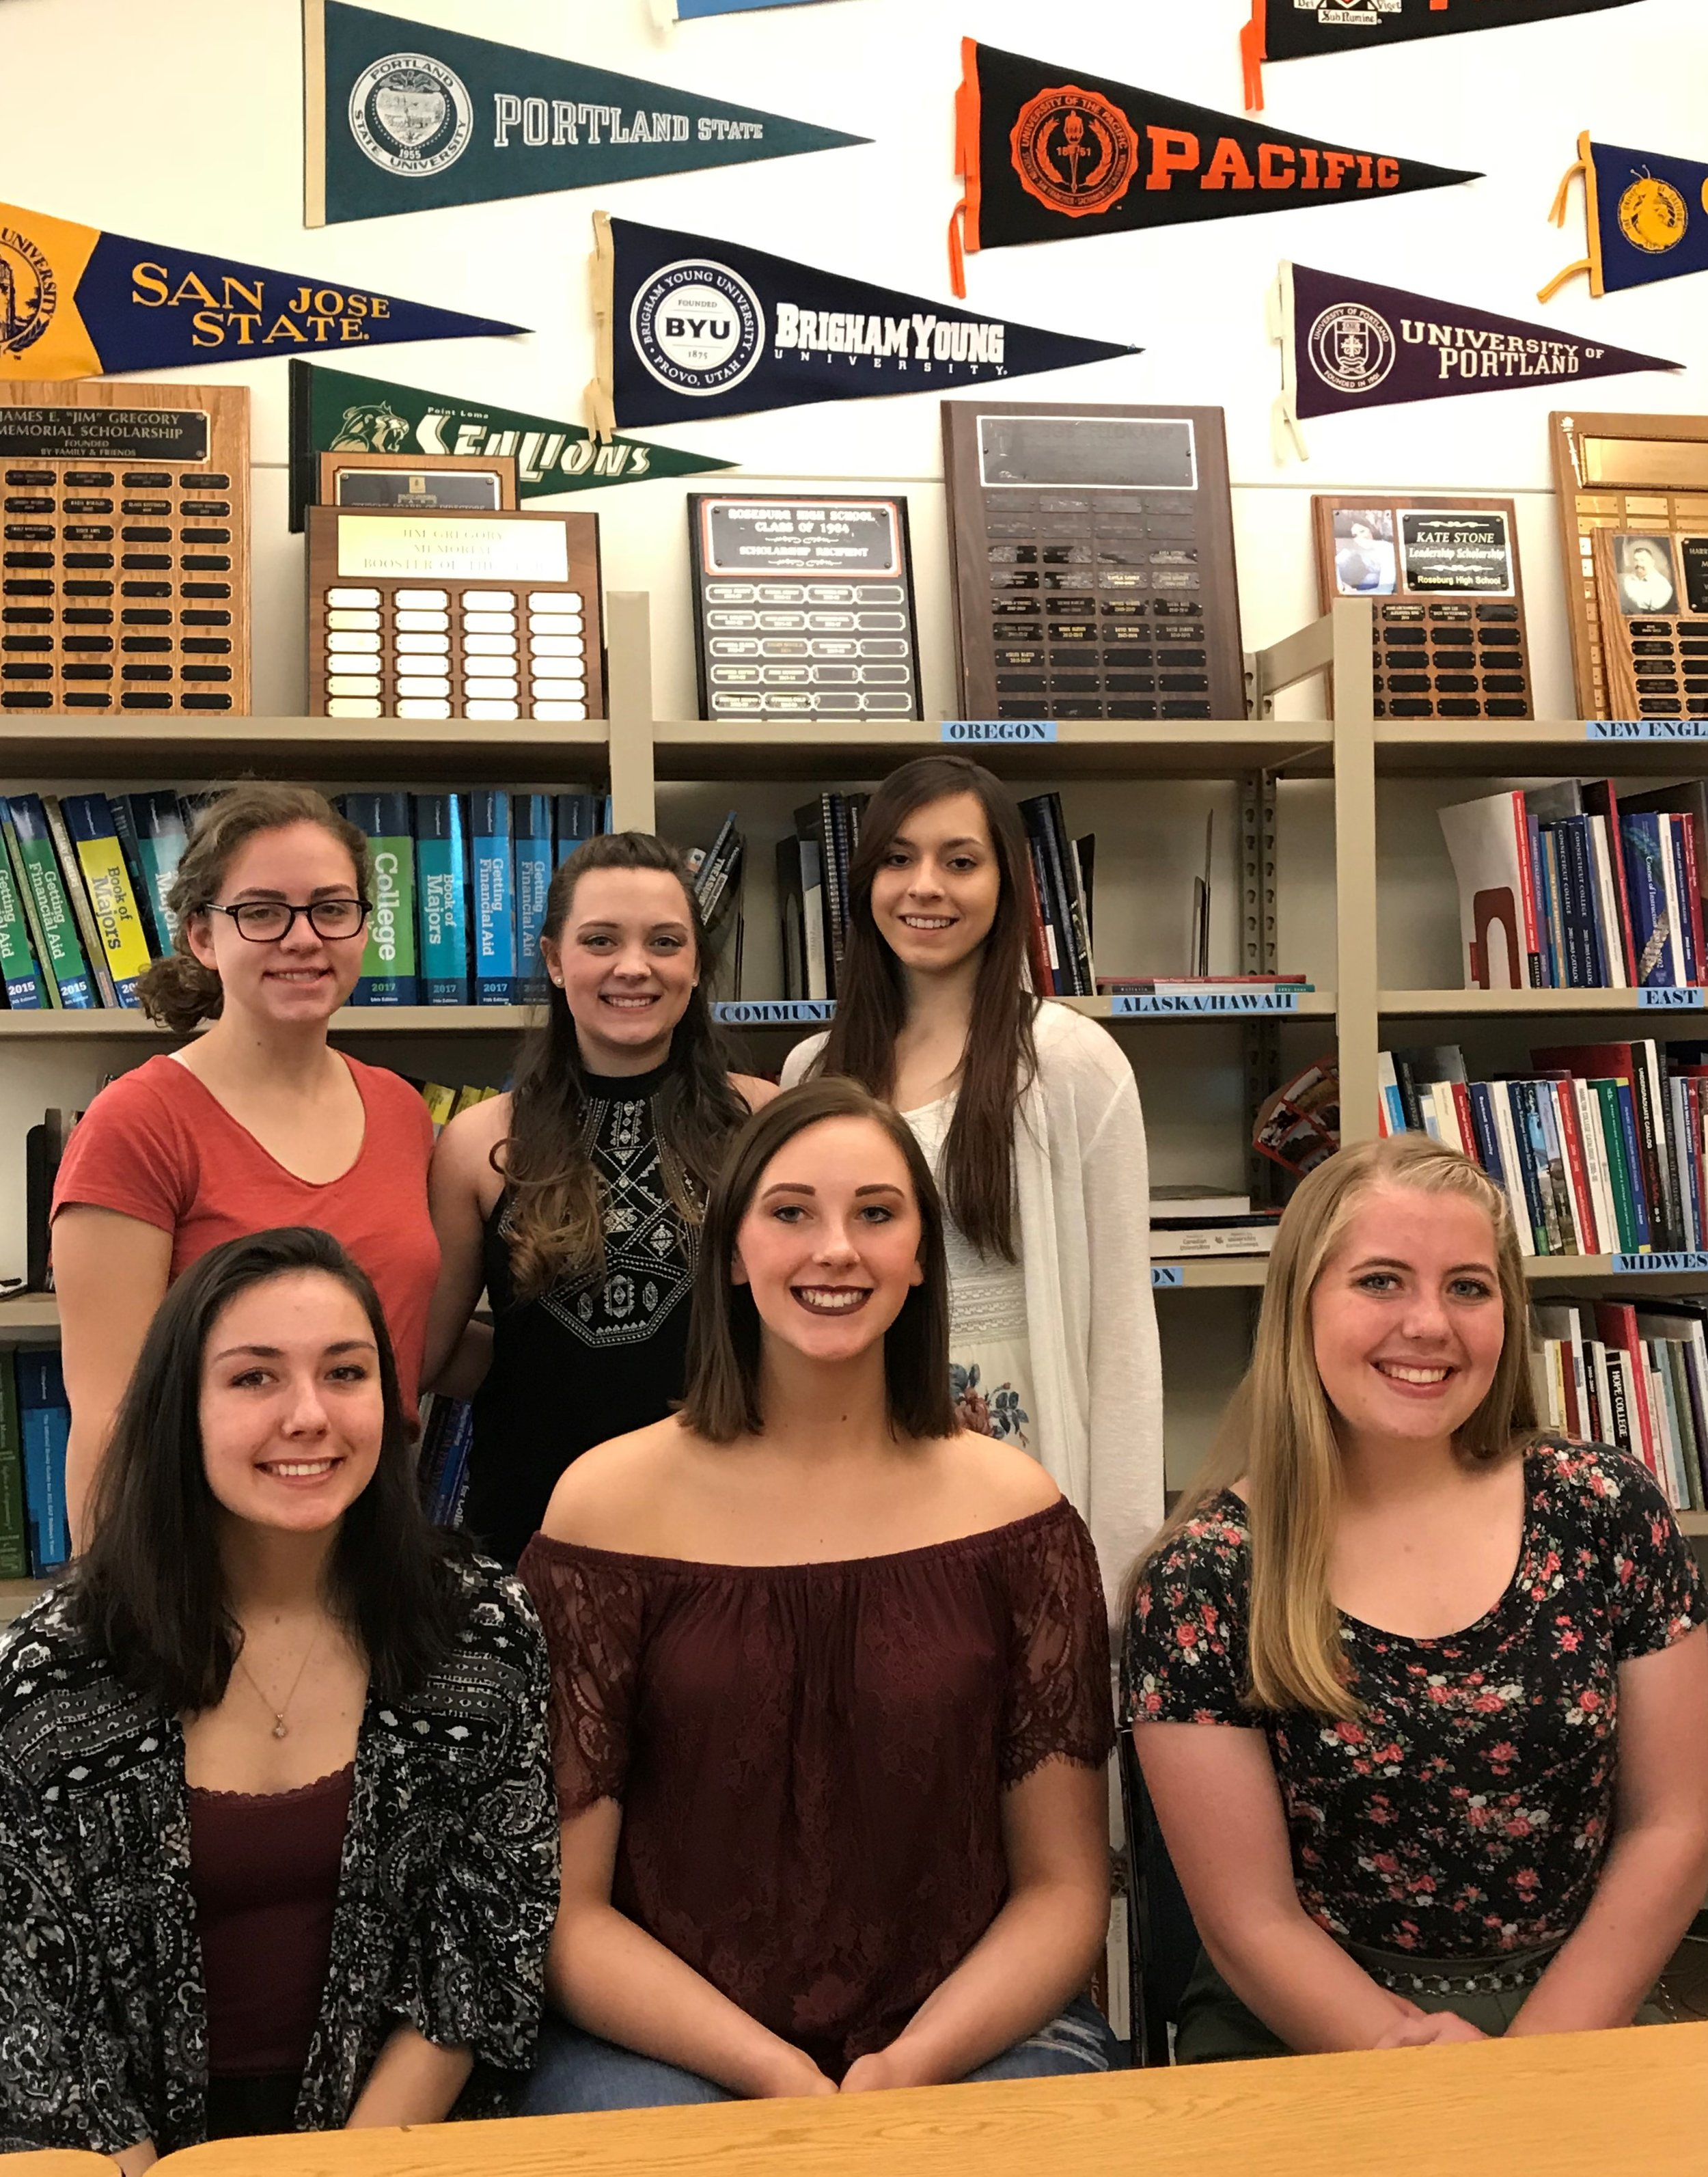 "Pictured in the RHS Career Center are (seated) Erin Ware, Jenna Smith, Grace Harker; (standing) Alison Forsloff, Madison Coffey and Hannah Wicks. Alexandria Cortes and Madison Severson unfortunately missed the photo due to participating in the Blood Drive that morning.             72     544x376                Normal     0                         false     false     false         EN-US     X-NONE     X-NONE                                                                                                                                                                                                                                                                                                                                                                                                                                                                                                                                                                                                                                                                                                                                                                                                                                                                                                                                                                                                                                                                                                                                                                                                                                                                                                                                                                                                                                                                                                                                                                                                                                                                                                         /* Style Definitions */  table.MsoNormalTable 	{mso-style-name:""Table Normal""; 	mso-tstyle-rowband-size:0; 	mso-tstyle-colband-size:0; 	mso-style-noshow:yes; 	mso-style-priority:99; 	mso-style-parent:""""; 	mso-padding-alt:0in 5.4pt 0in 5.4pt; 	mso-para-margin:0in; 	mso-para-margin-bottom:.0001pt; 	mso-pagination:widow-orphan; 	font-size:10.0pt; 	font-family:""Times New Roman"",serif;}          FOR IMMEDIATE RELEASE  APRIL 25, 2018  Contact: Karen Goirigolzarri, 541-430-4142,  Kgoirigolzarri35@gmail.com     RHS Foundation announces 2018 scholarship winners    The Roseburg High School Foundation announces eight student winners in the first year of scholarship awards made by the newly reorganized independent, nonprofit organization, formerly the Roseburg Indian Booster Club.  Karen Goirigolzarri, Foundation vice-president and chair of the Scholarship Committee, congratulated the winners at a gathering in the RHS Career Center on Wednesday. Students submitted applications in March including information about their GPA, school/community activities, career aspirations and letters of recommendation. After its review process, the Foundation awarded 2 scholarships at $1,000 each and 6 at $500 each:  Jenna Smith was selected winner of the $1000 Forever RHS scholarship based on her essay answering the question, ""What does being an RHS Indian mean to you?""  Grace Harker was awarded a $1000 RHS Foundation scholarship and the following students each won $500 Foundation scholarships to assist with their post-high school education:  Madison Coffey, Alexandria Cortes, Alison Forsloff, Madison Severson, Erin Ware, and Hannah Wicks.  The mission of the Roseburg High School Foundation is to secure and distribute financial resources for students, faculty, and staff of Roseburg High School in their efforts to enhance and improve educational opportunities through academics, art, athletics, clubs and other activities closely associated with Roseburg High School.  The Foundation seeks to grow its funding base by connecting with RHS alumni and other interested individuals and business owners who would like to help make more scholarships available to graduating seniors, as well as program/activity grants to classroom teachers and staff. For more information, visit  www.roseburghighschoolfoundation  or email  roseburghighschoolfoundation@gmail.com .                                                                       ###"